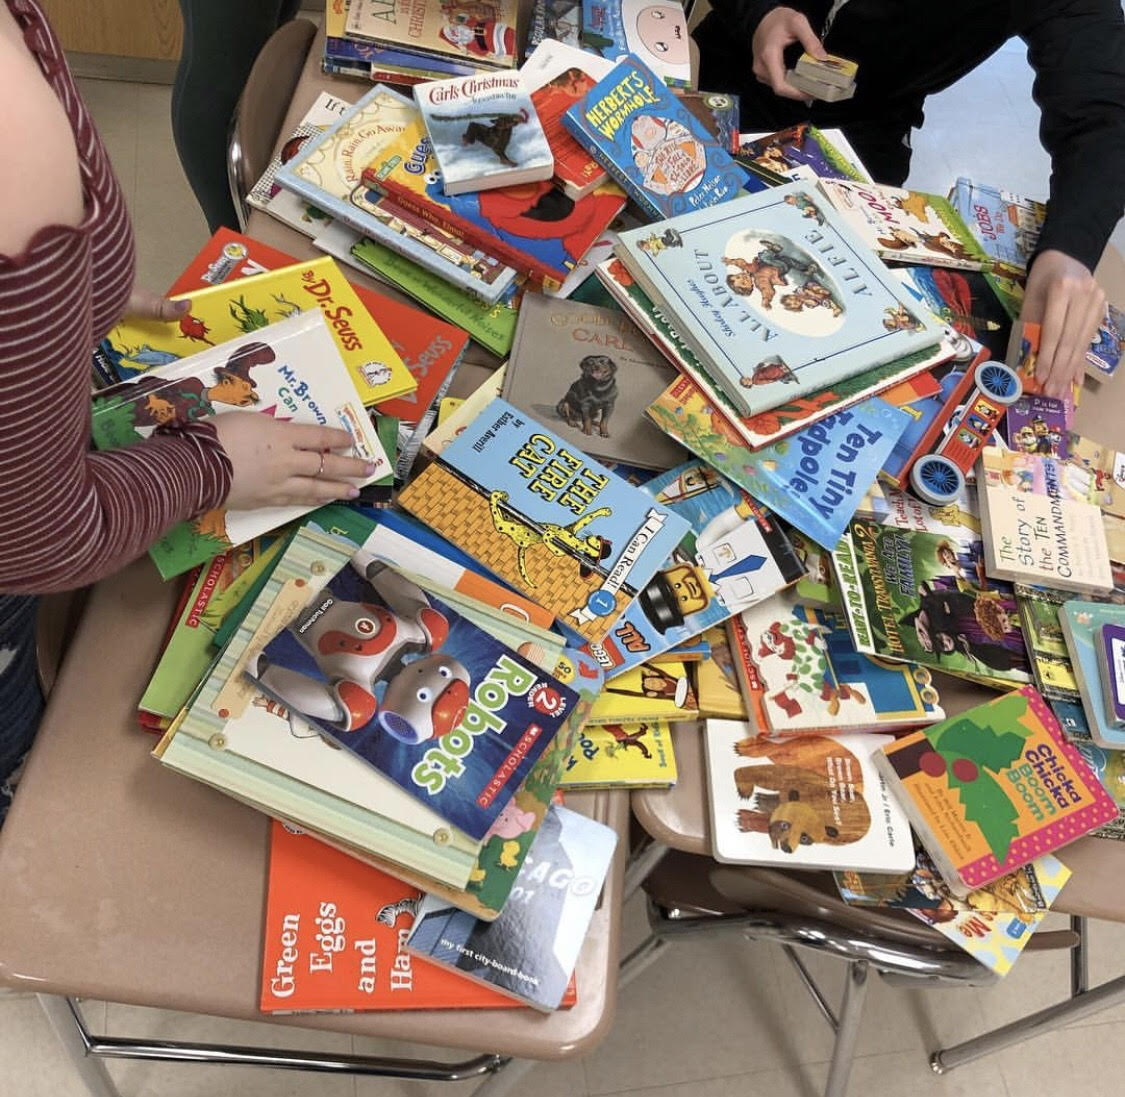 In March of 2018, Interact Club had a children's book drive; all of the donated books were given to Onward Neighborhood house.